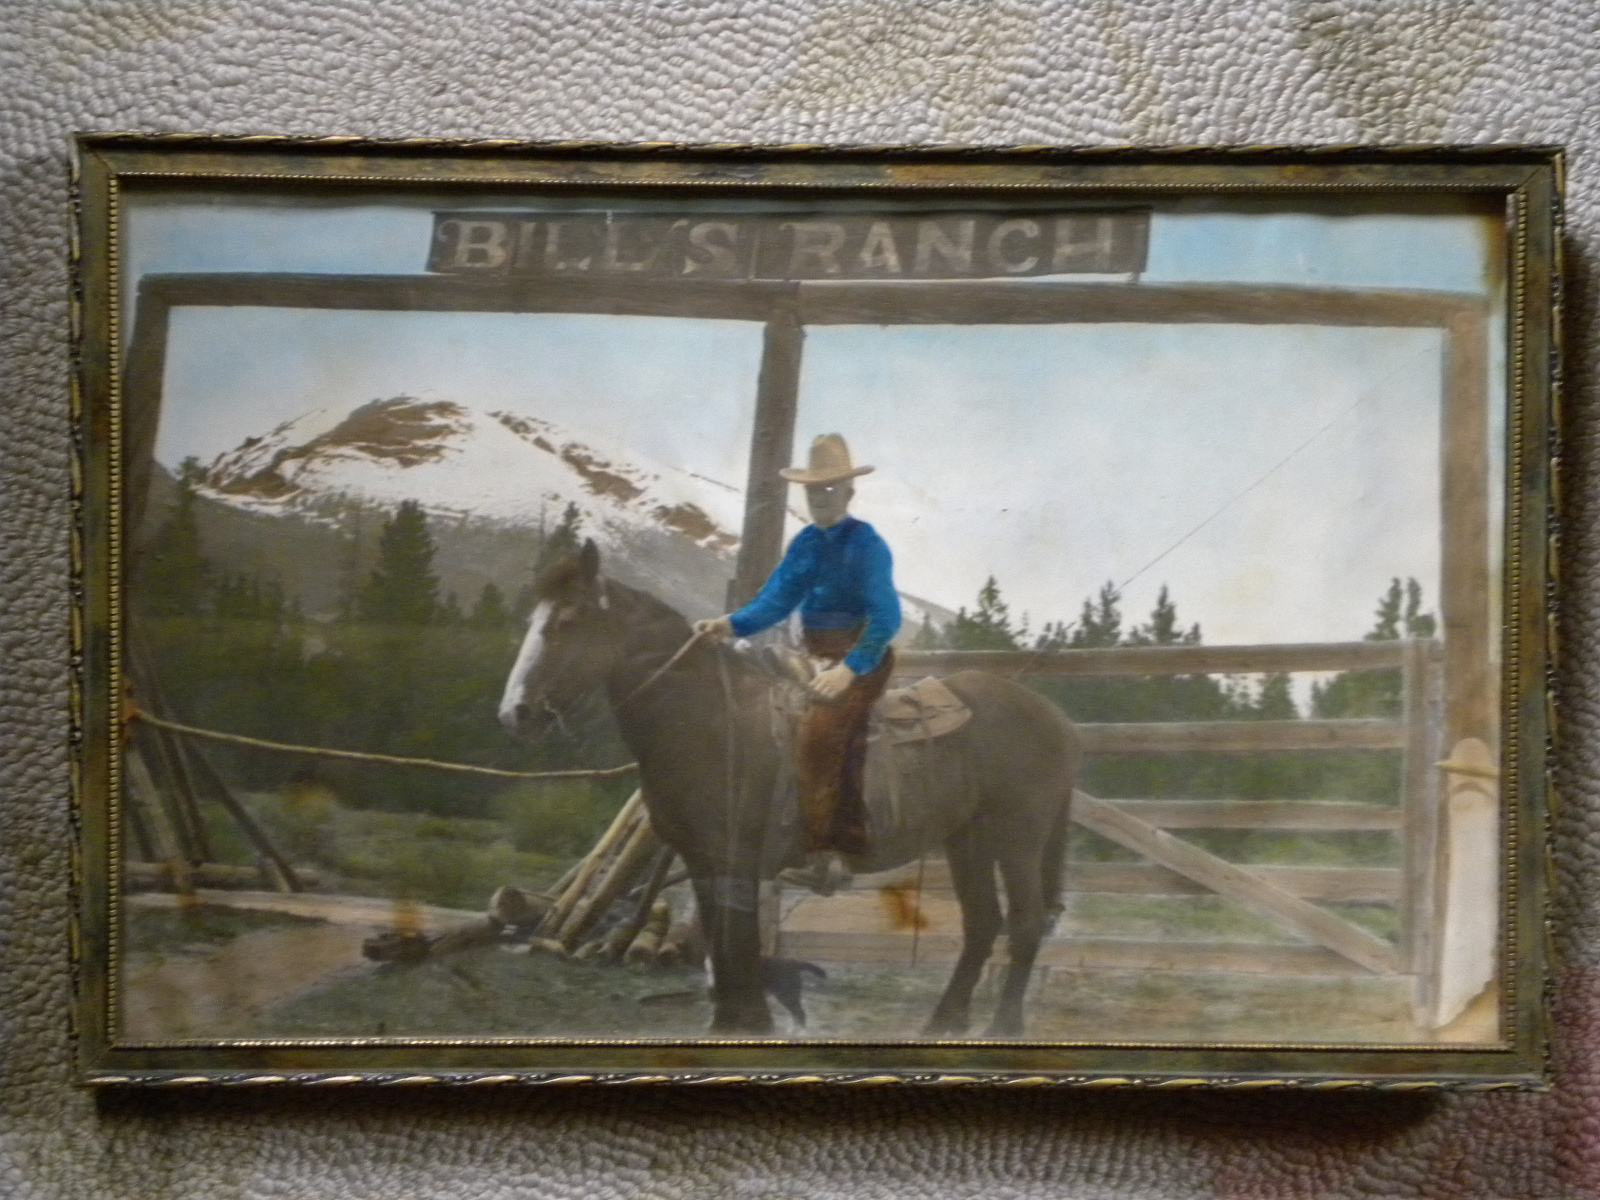 An antique framed photo of Bill Thomas on his horse in front of the Bill's Ranch sign.